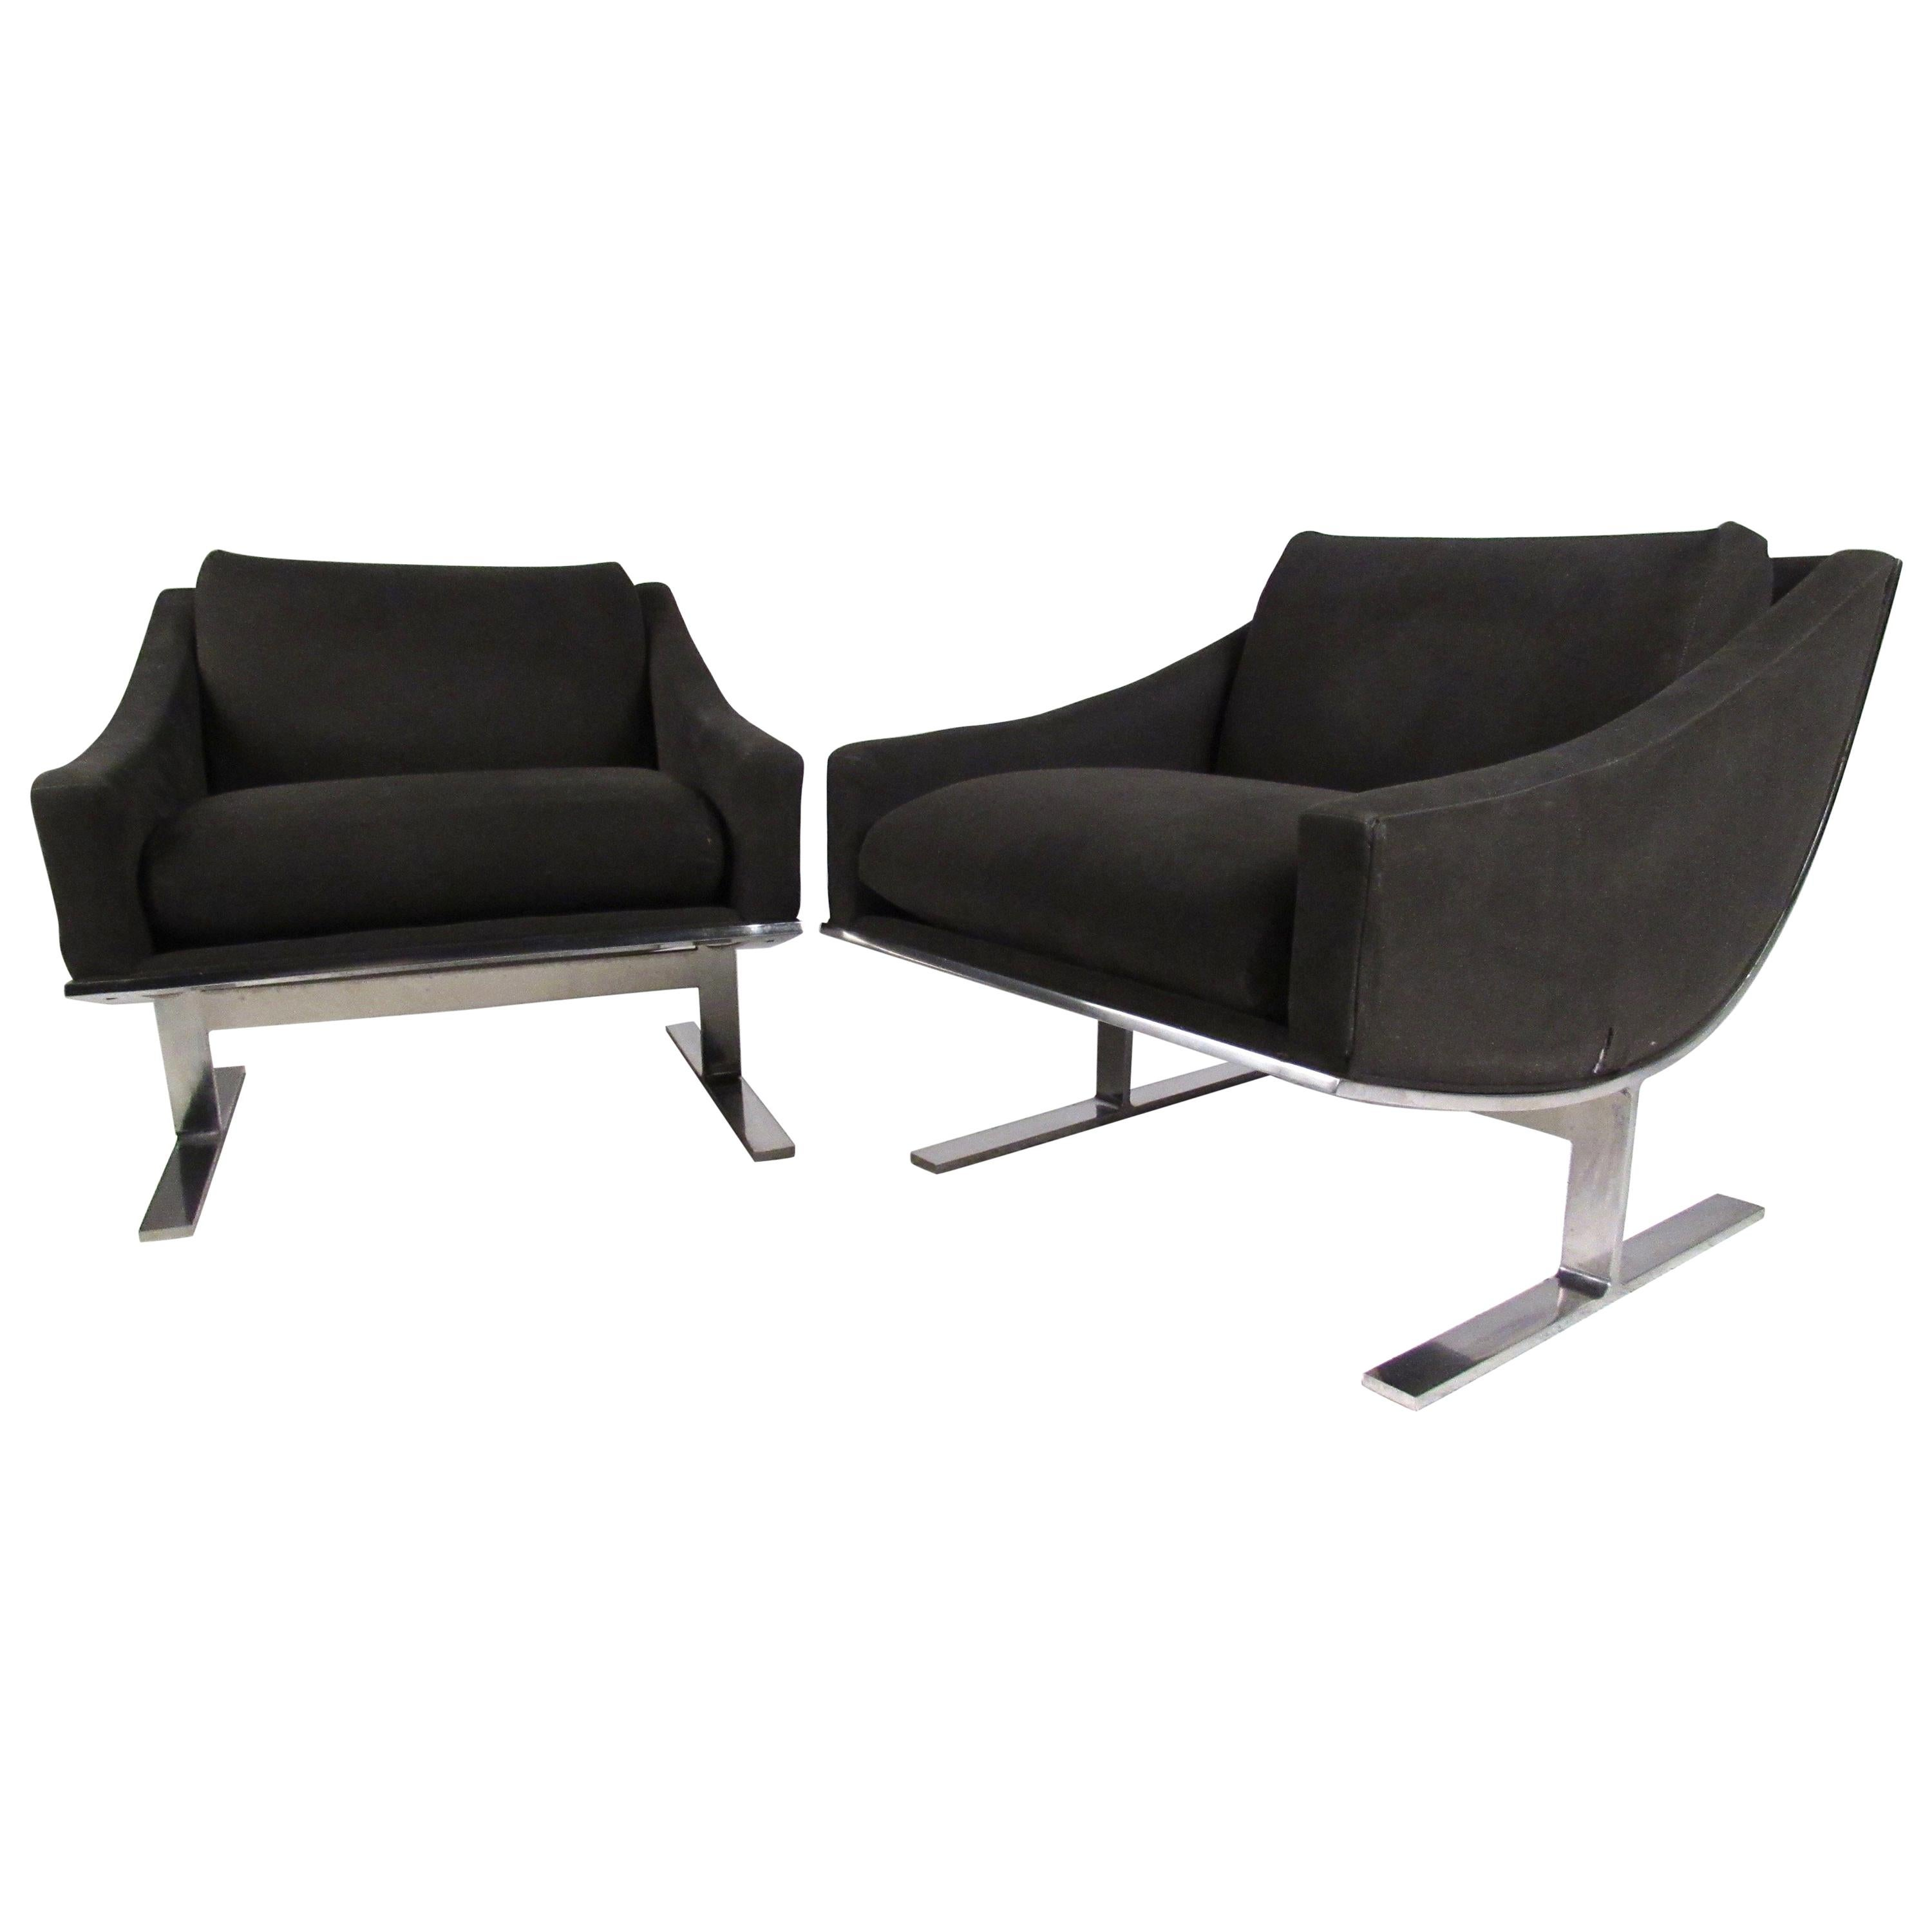 Kipp Stewart Modern Lounge Chairs By Directional For Sale